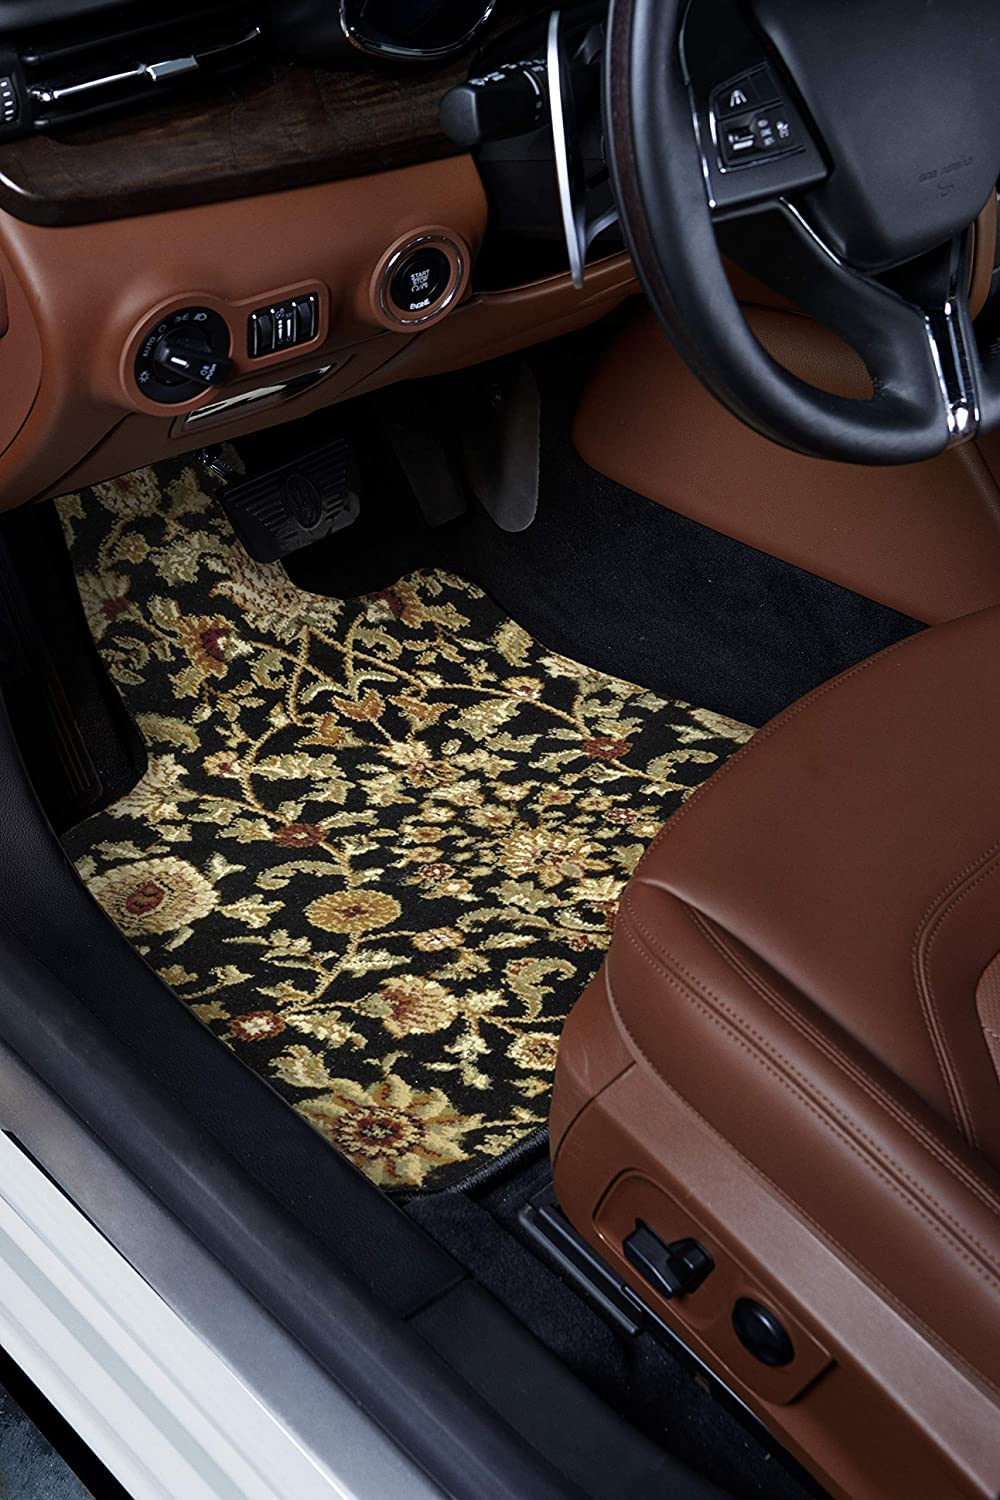 Polypropylene Fiber GG Bailey D2621A-F1A-BK-OR Front Set Custom Fit Floor Mats for Select Jaguar XJ Models Black Oriental